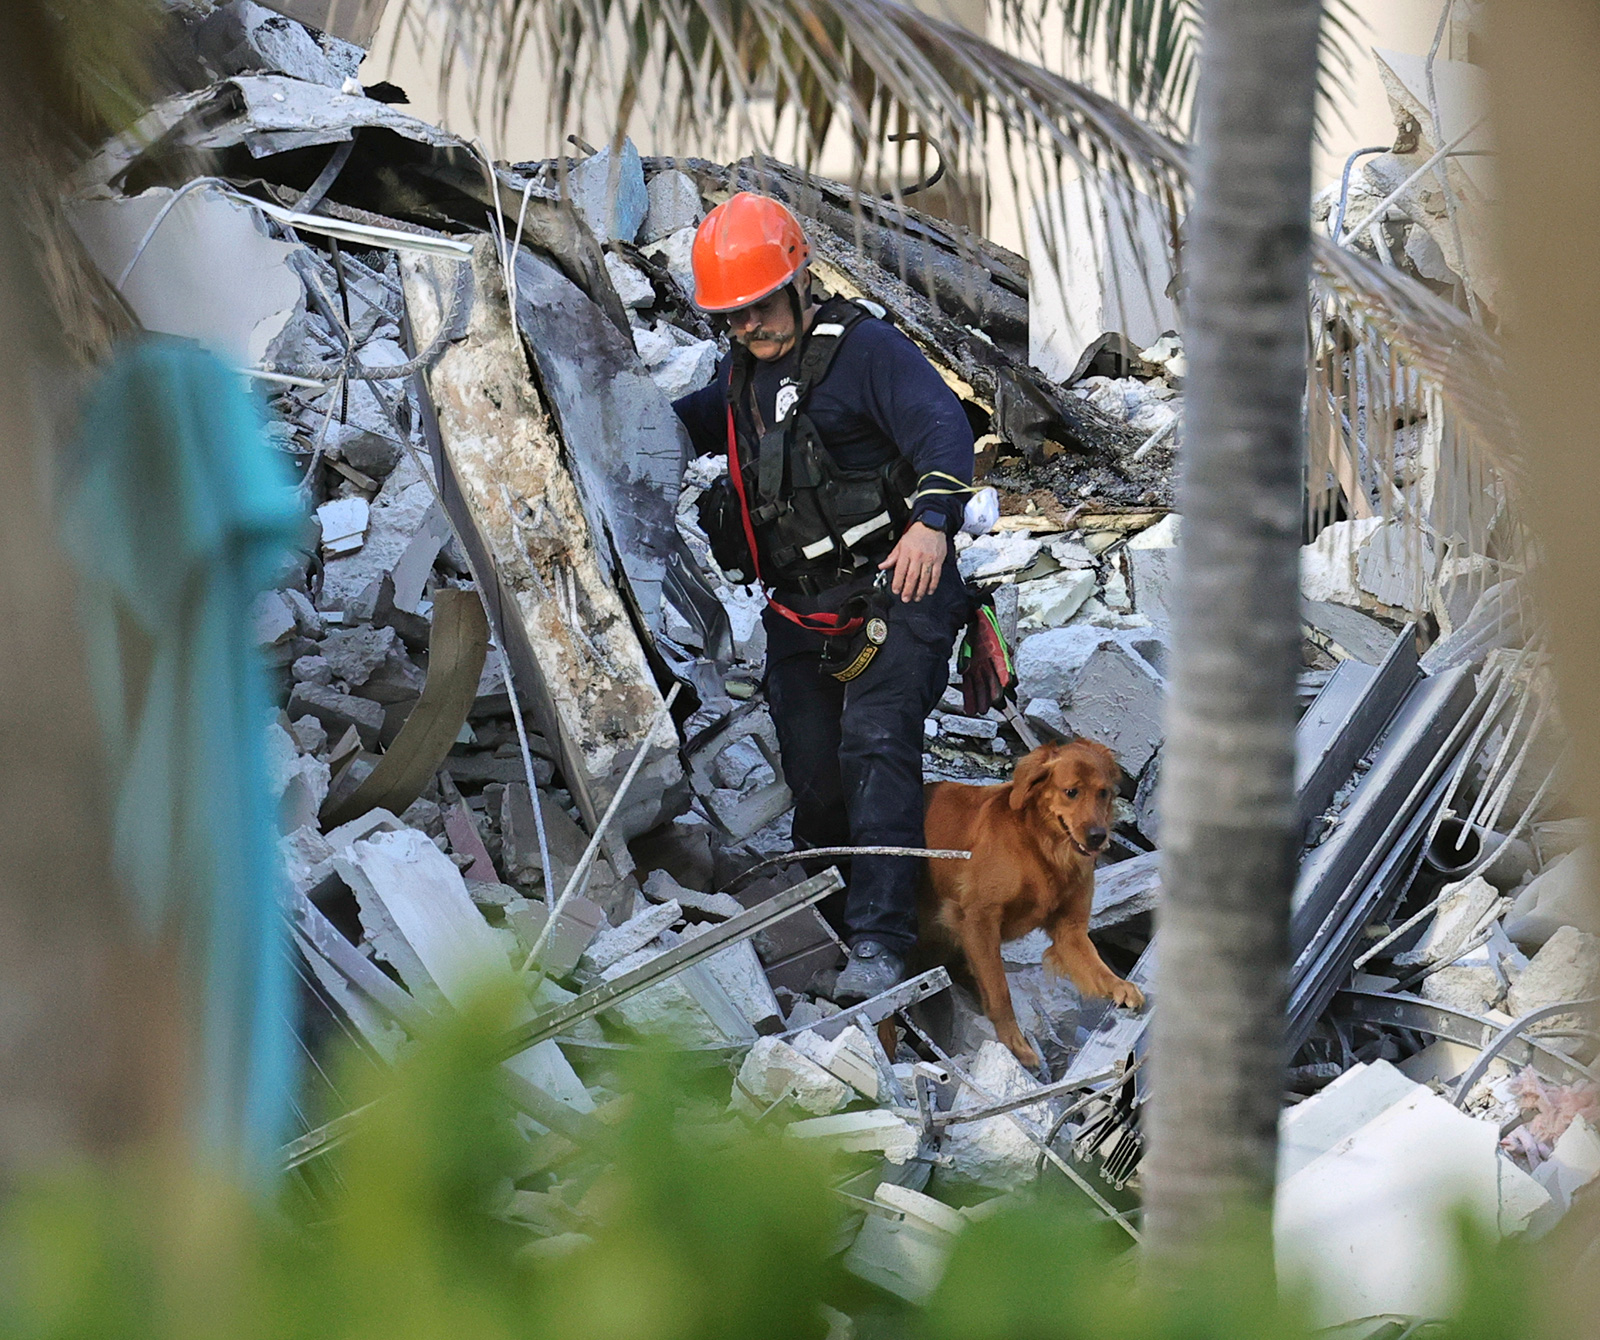 Fire rescue personnel conduct a search and rescue with dogs through the rubble of the Champlain Towers South Condo after the multistory building partially collapsed in Surfside on Thursday.